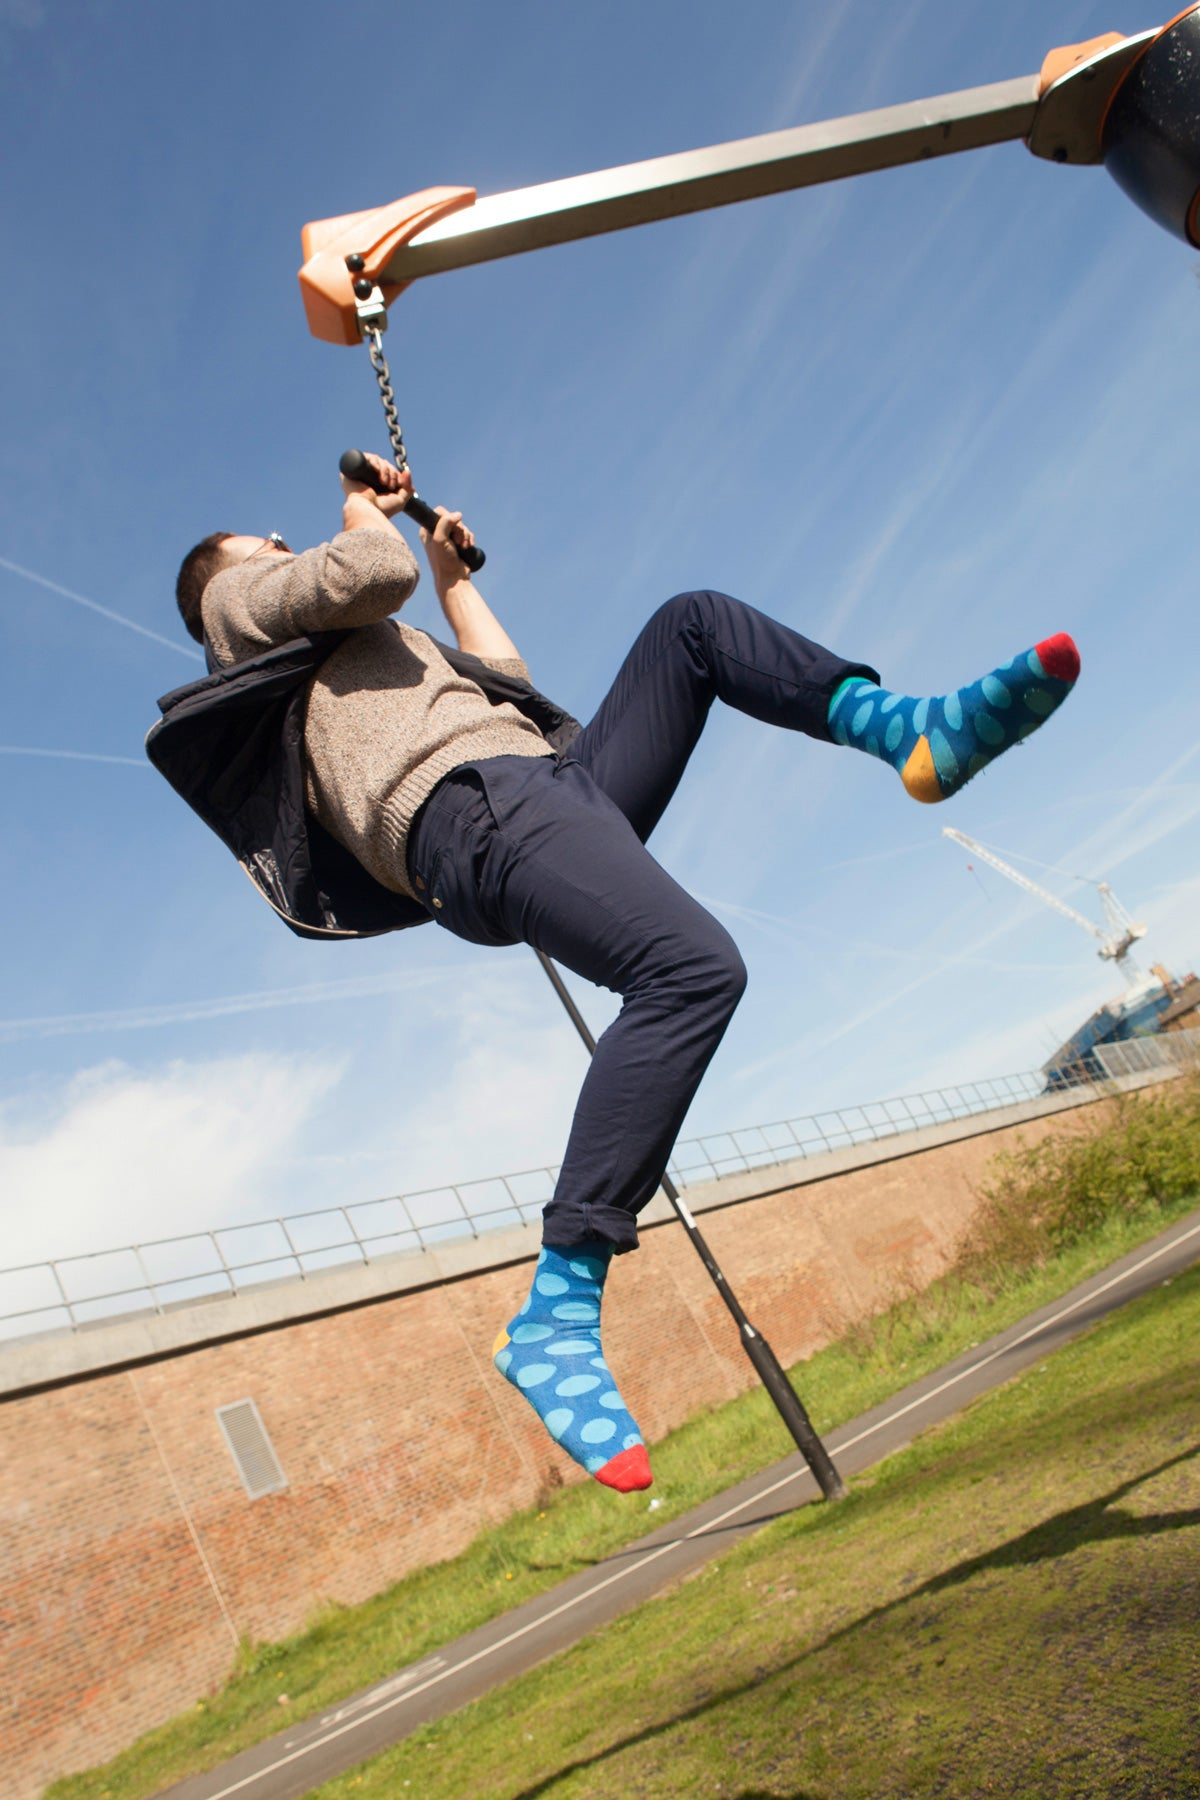 Jumping man wearing colorful socks